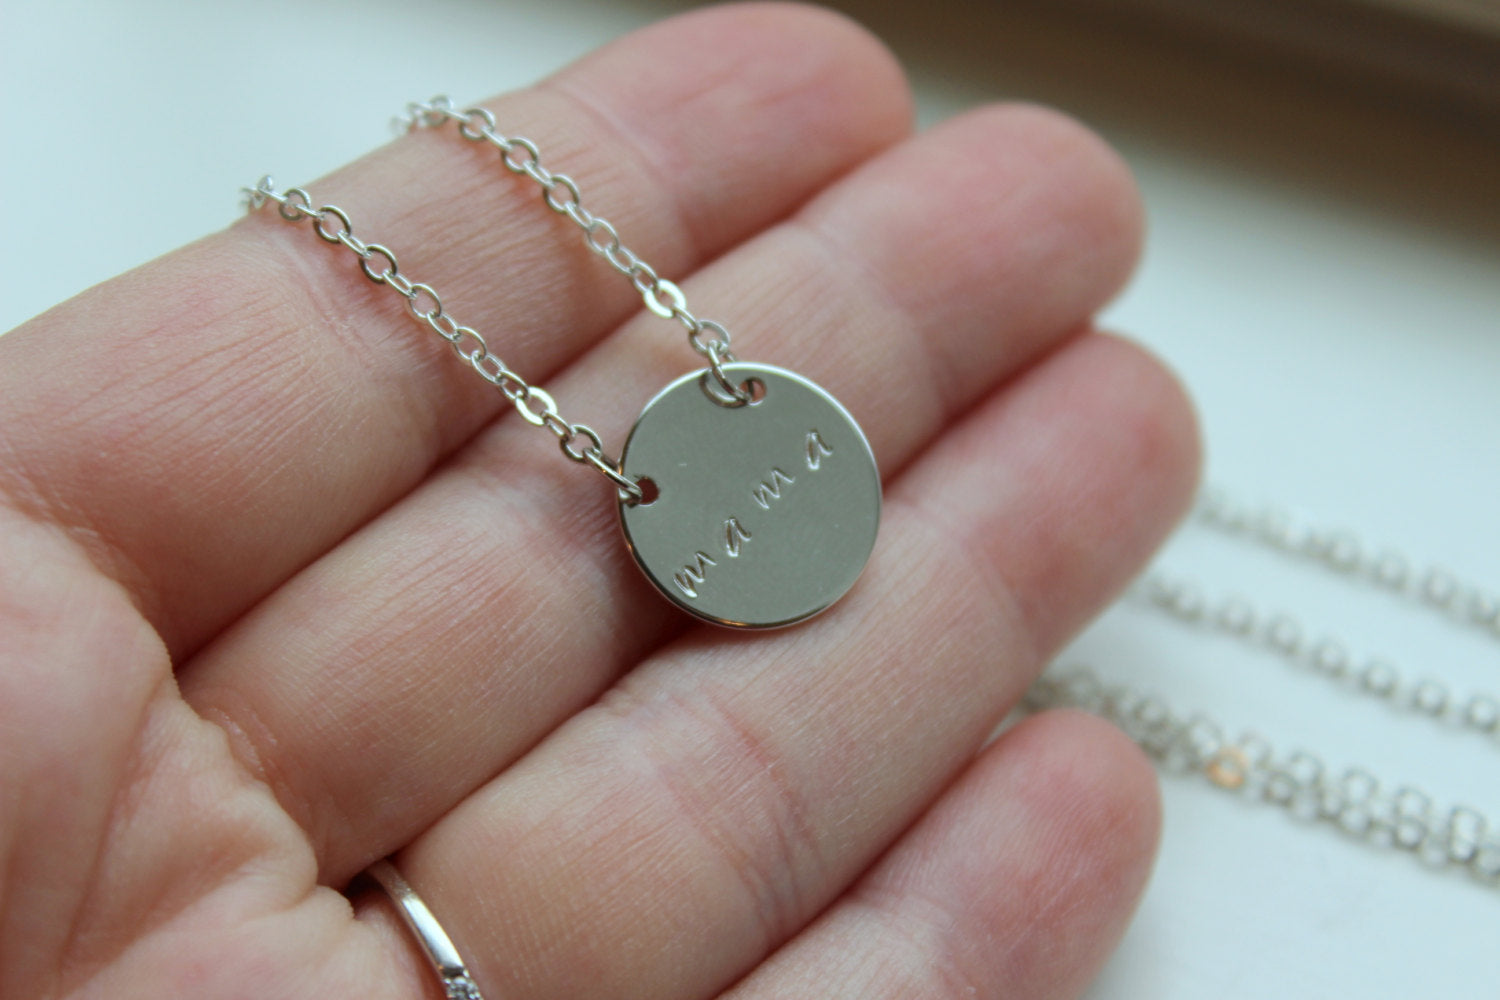 Silver Name Necklace, Silver Necklace, Silver Jewelry, Round Pendant Necklace, Grandma Gift, Round Necklace, Mama Necklace, Mama Jewelry,